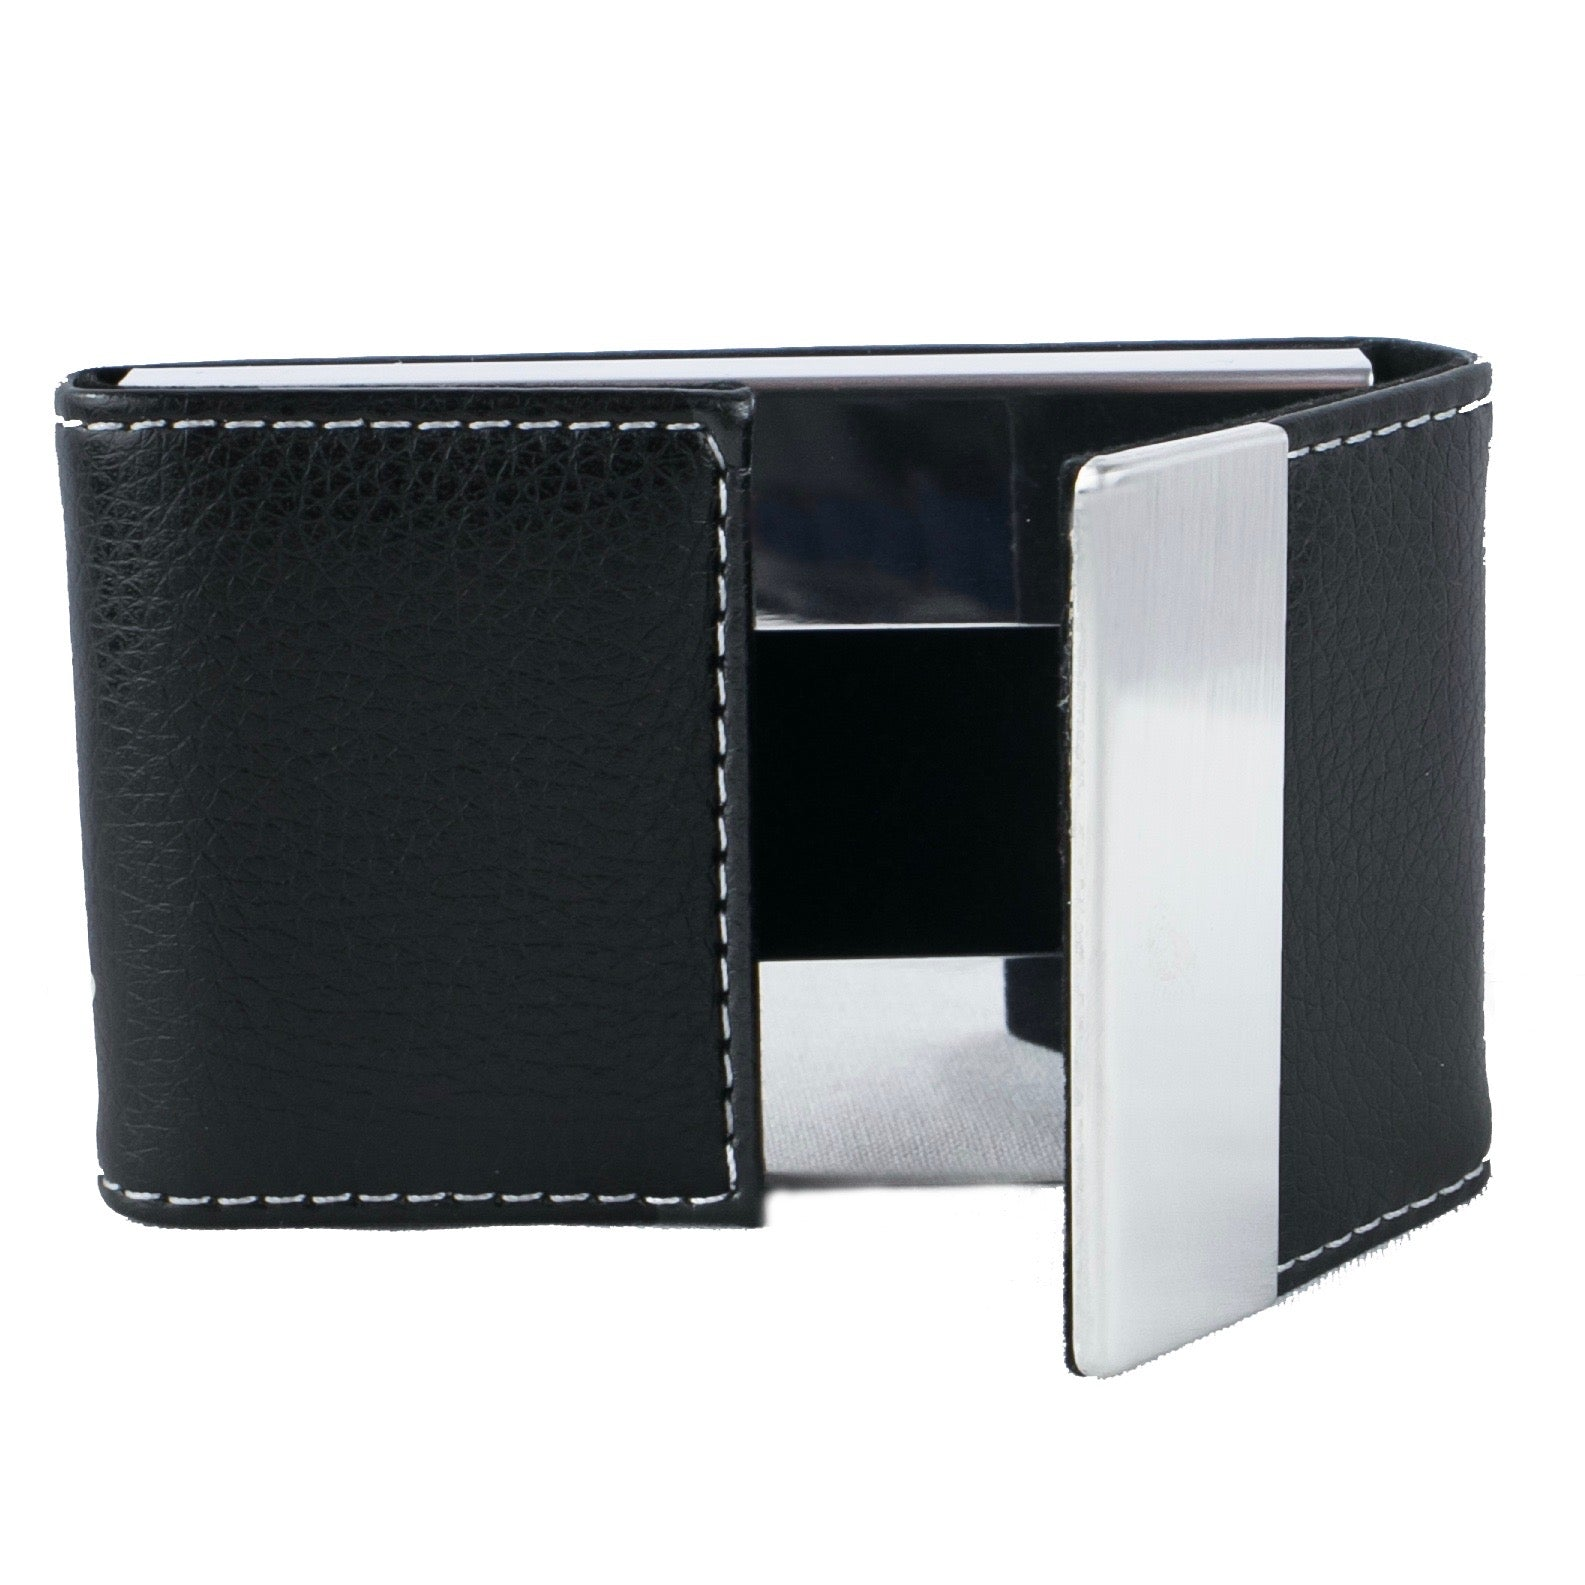 Business Card Holder - PU Leather & Stainless Steel – Nicestile USA